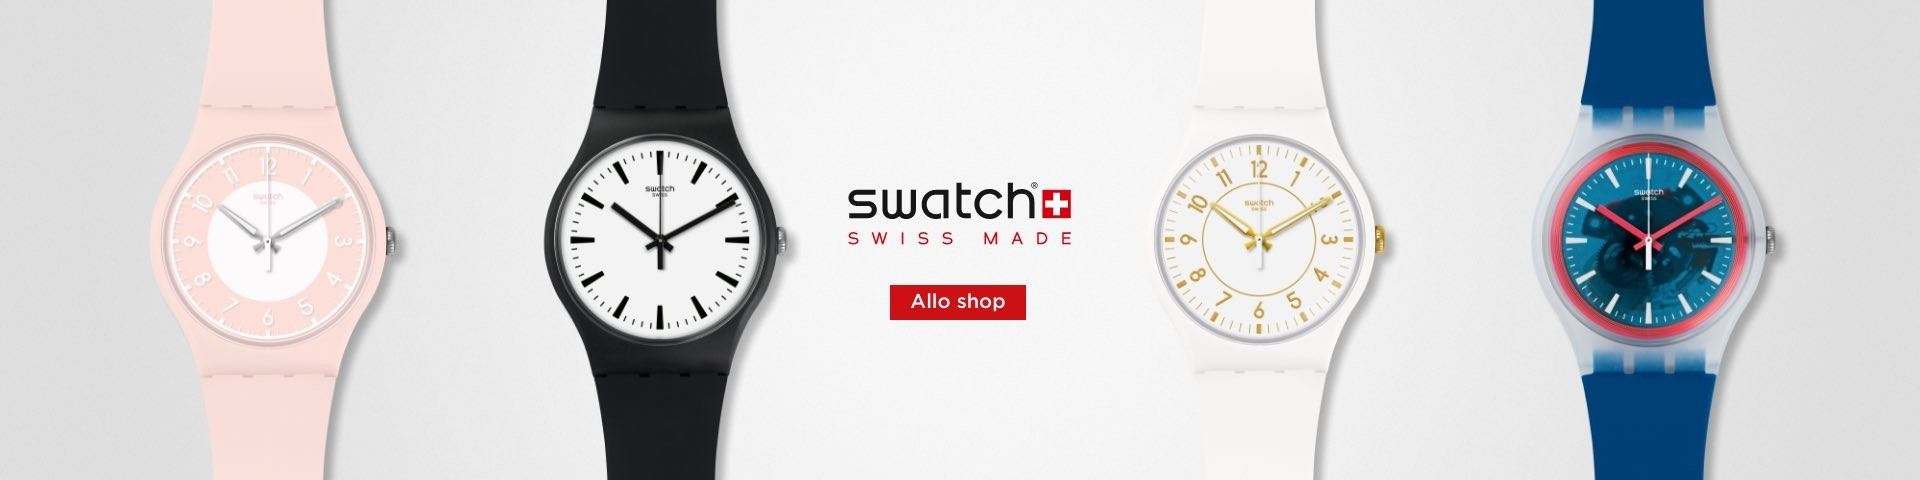 vlc Swatch Pay Uhren Desktop IT